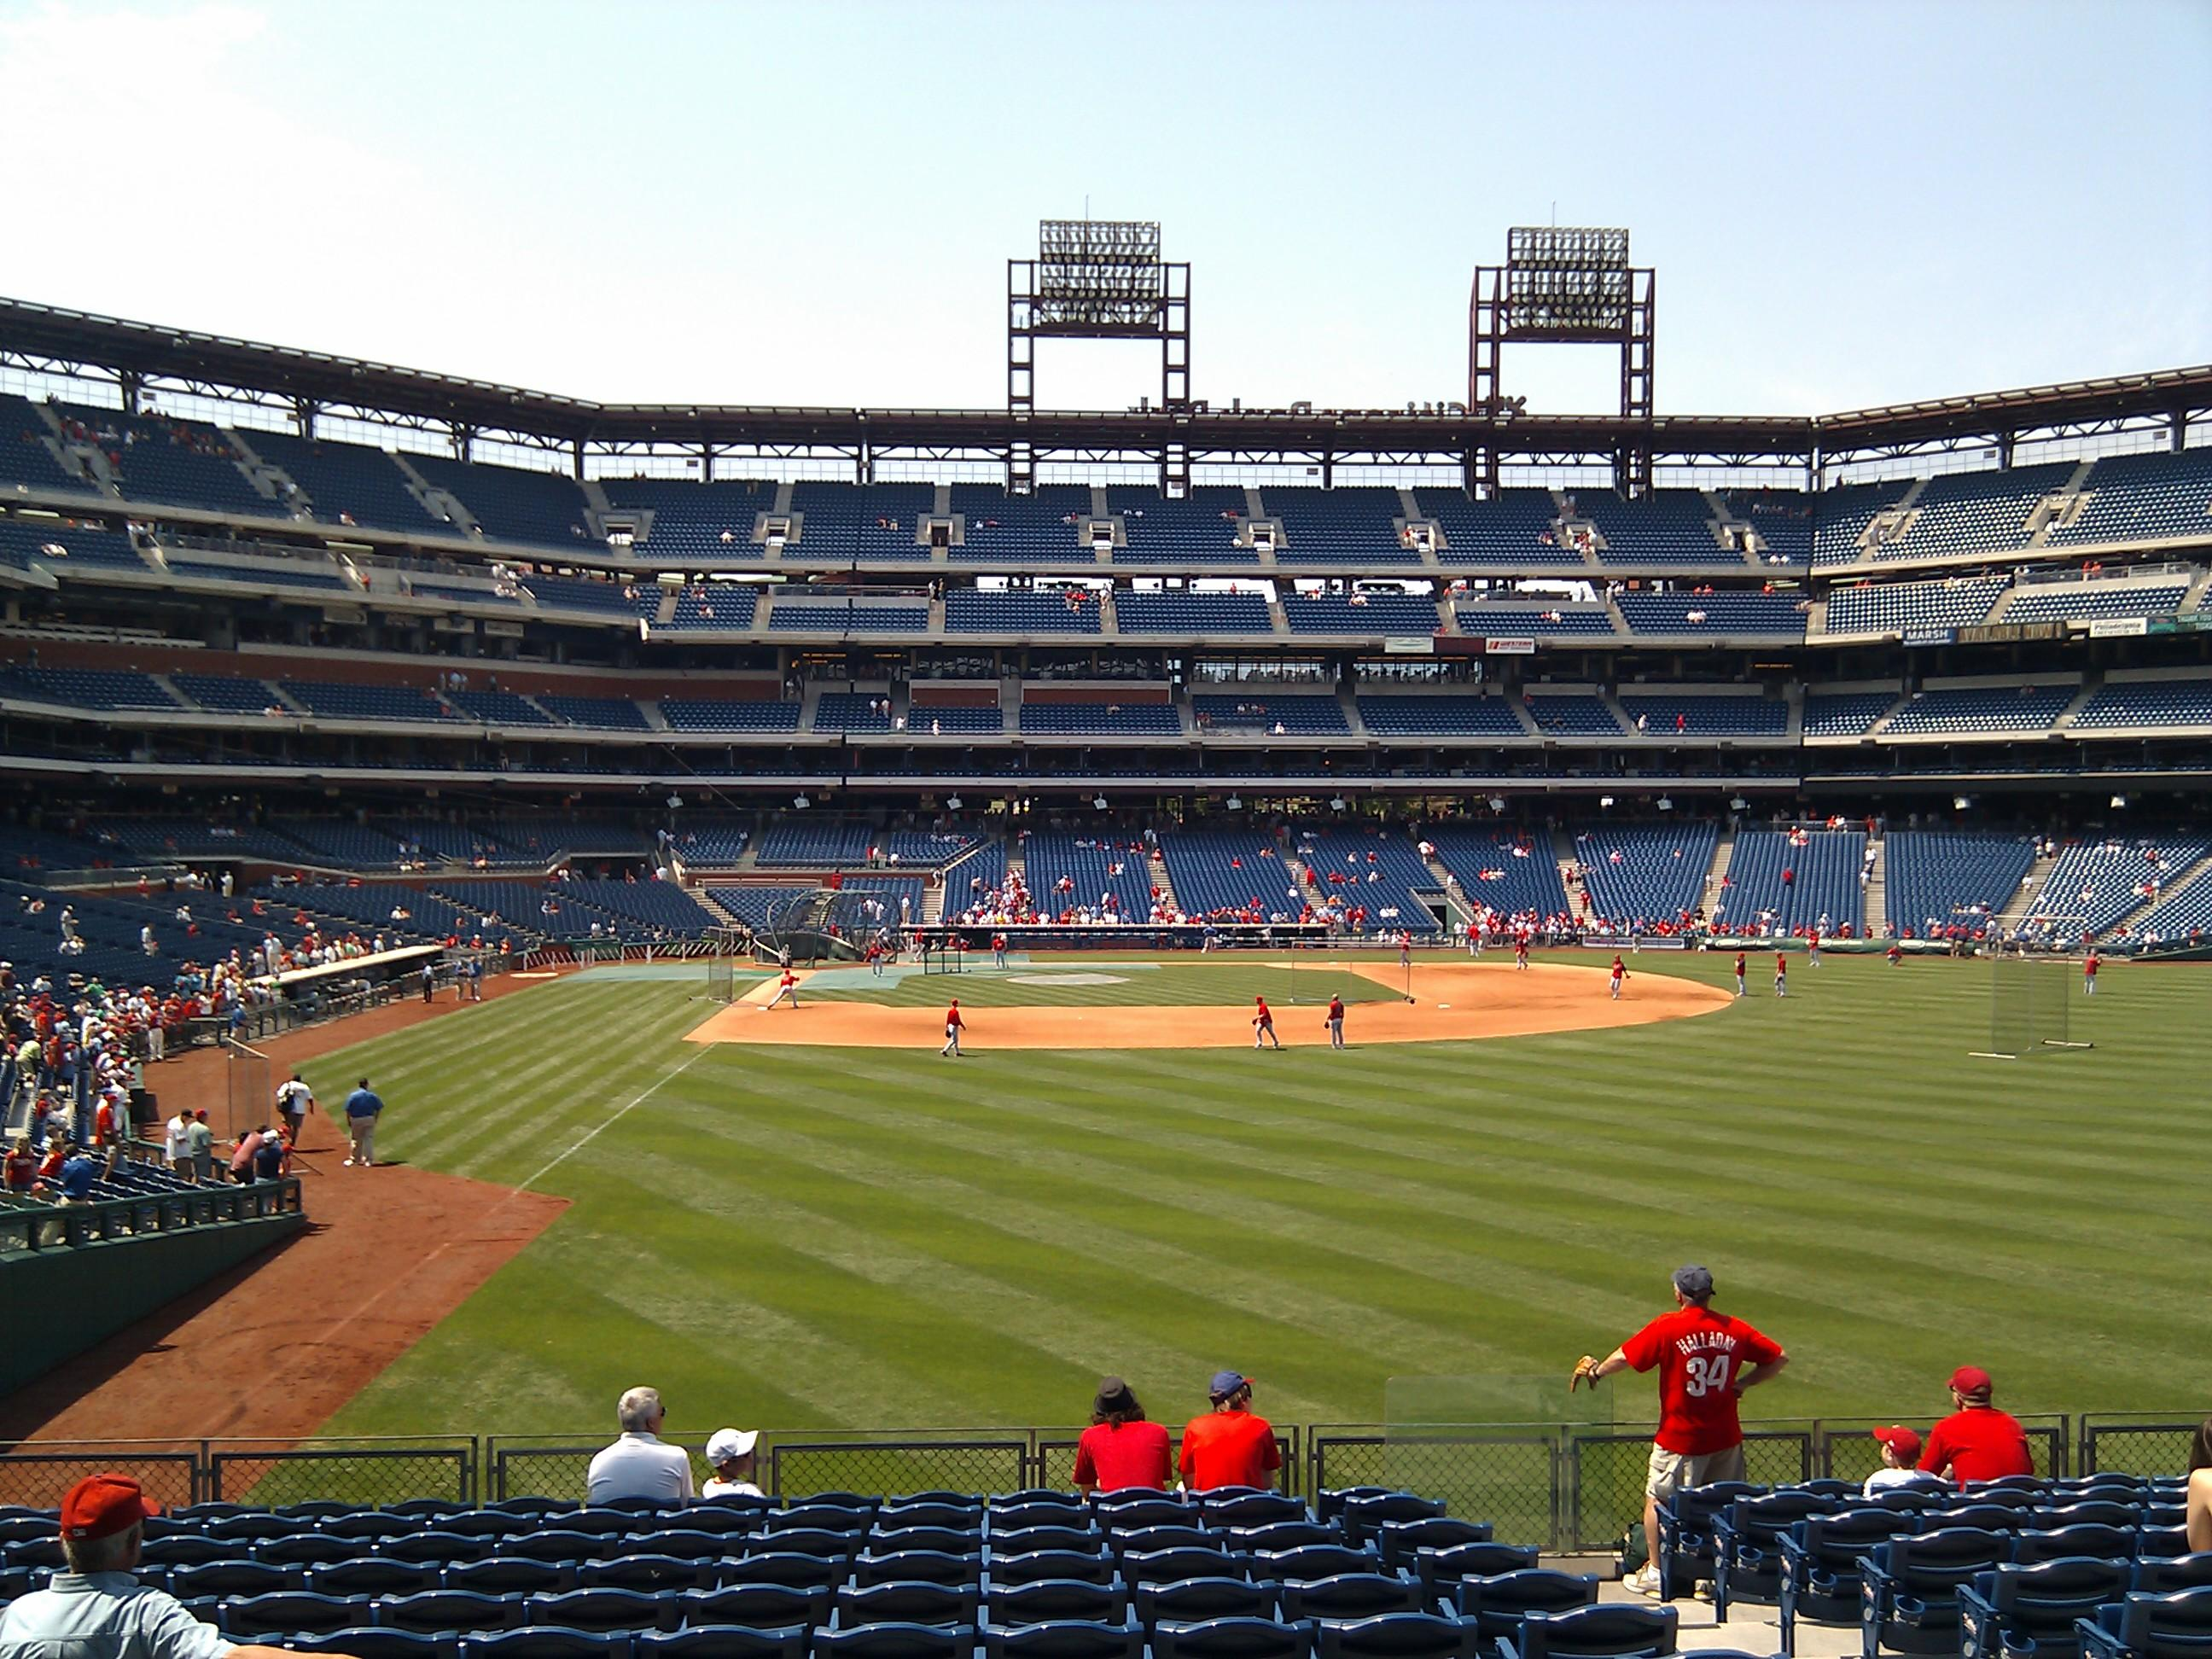 Citizens Bank Park Section 106 Row 14 Seat 4